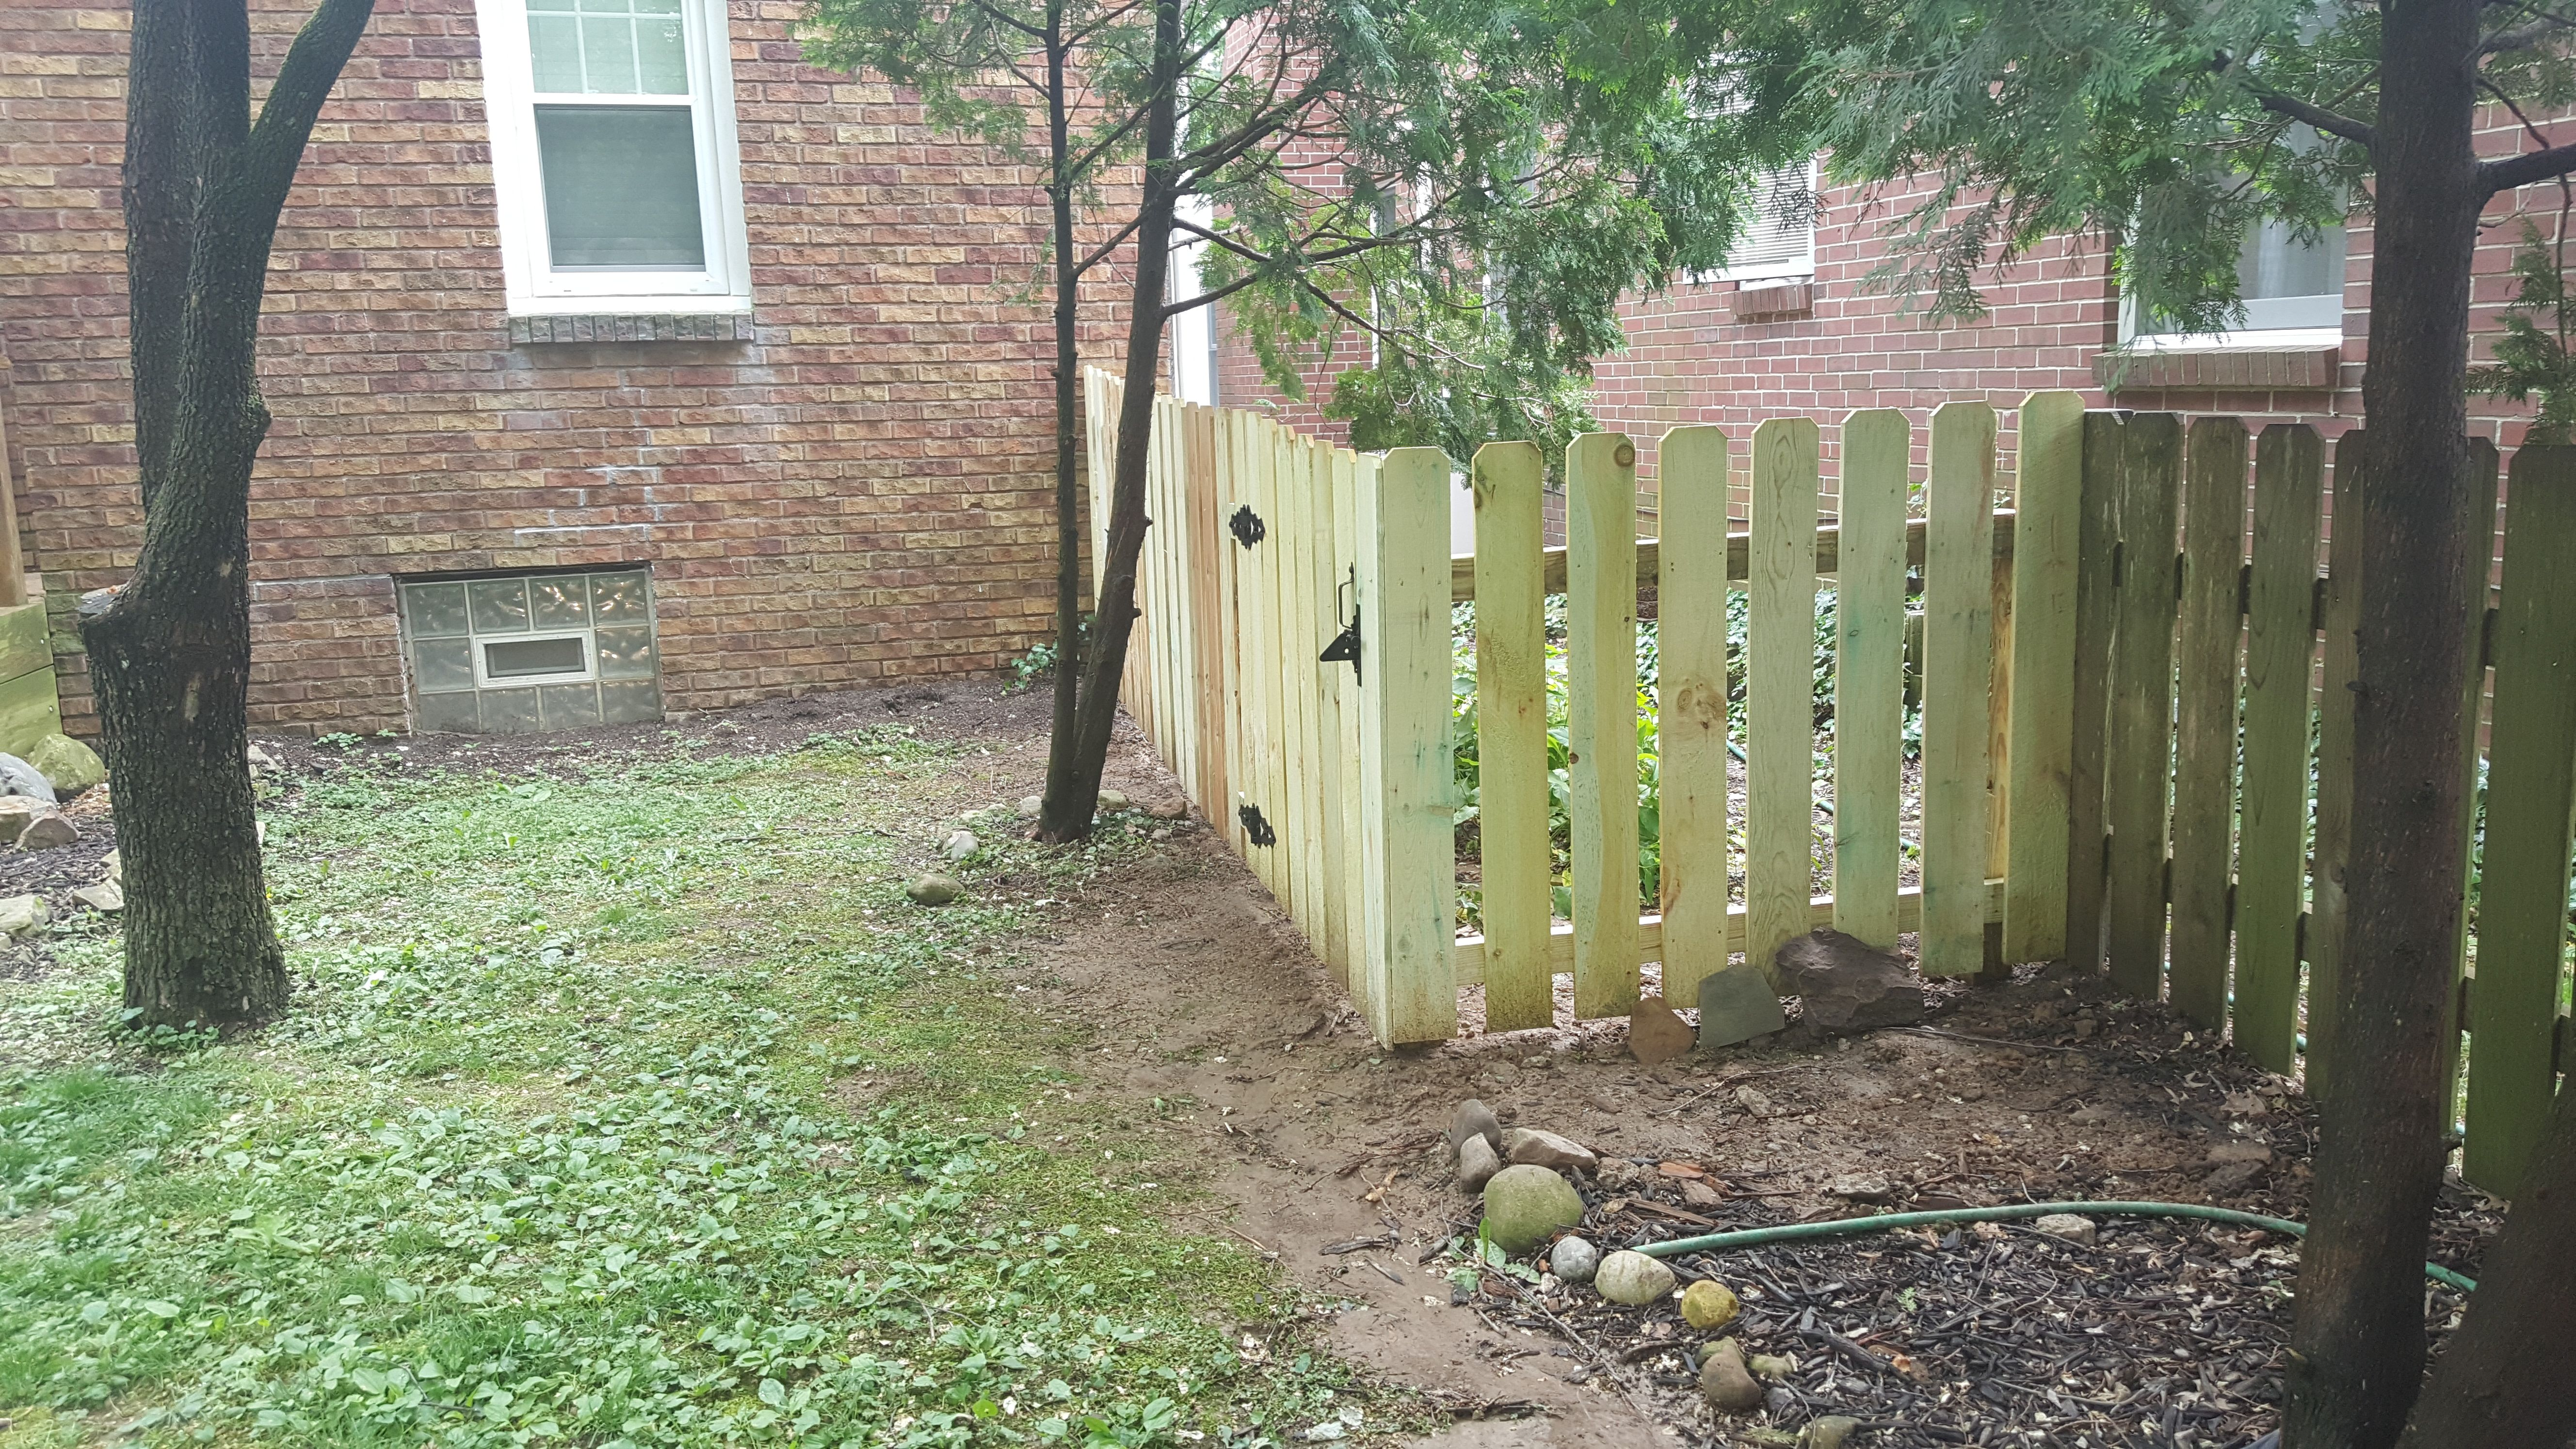 4 Ft Tall Dog Ear Pine Spaced Fence Dogearfence Picketfence Fence Styles Dog Ear Fence Wood Fence